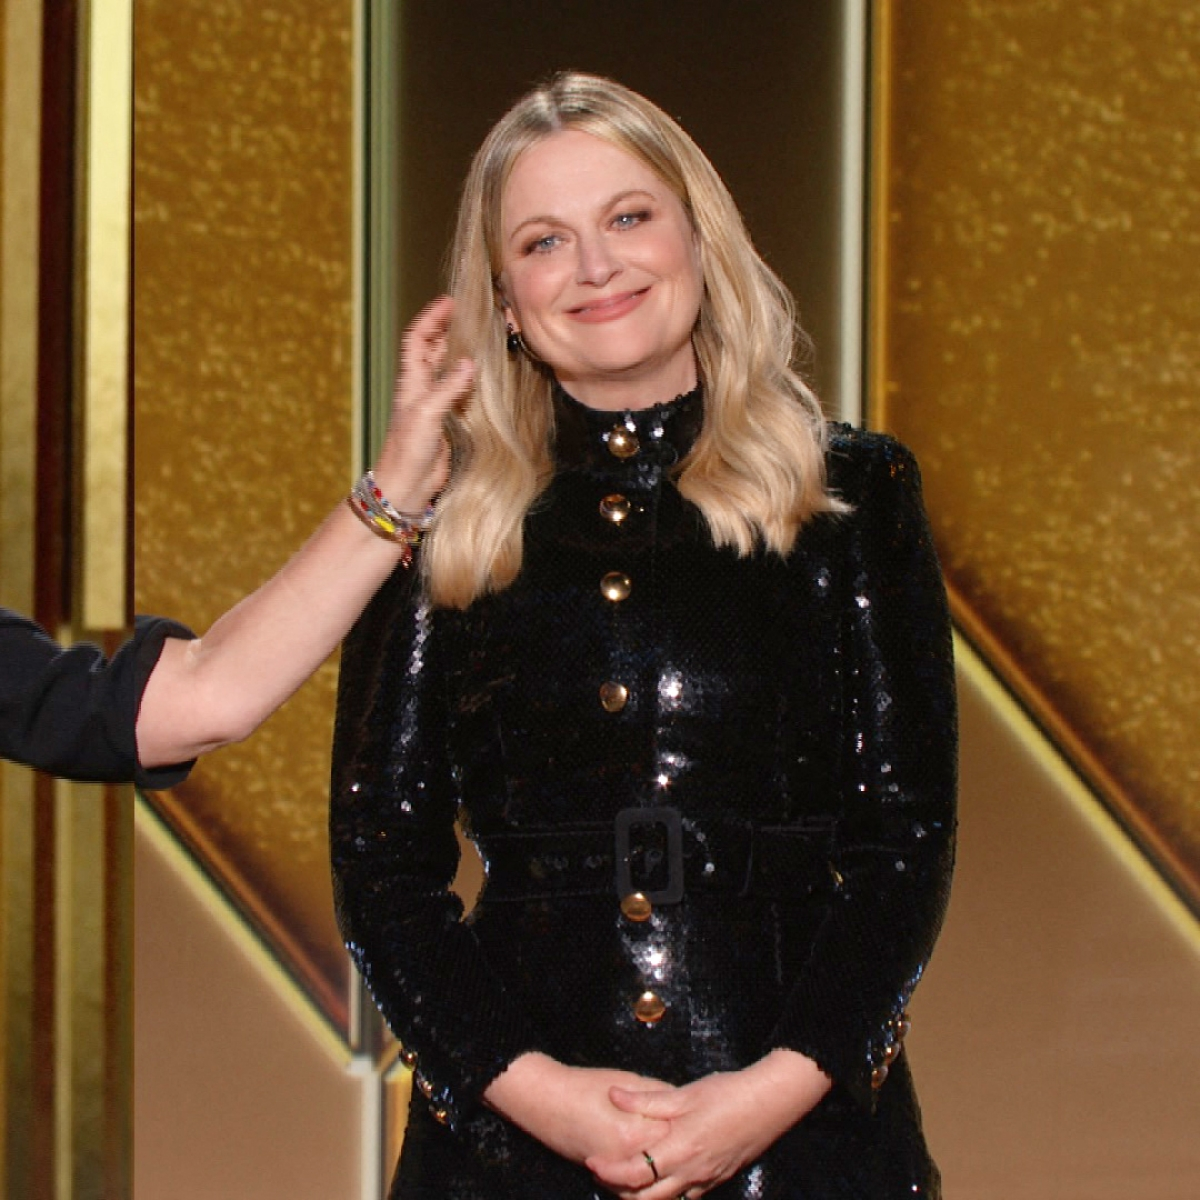 Golden Globes 2021: In a first, frontline workers replace celebs as live audience at the awards ceremony